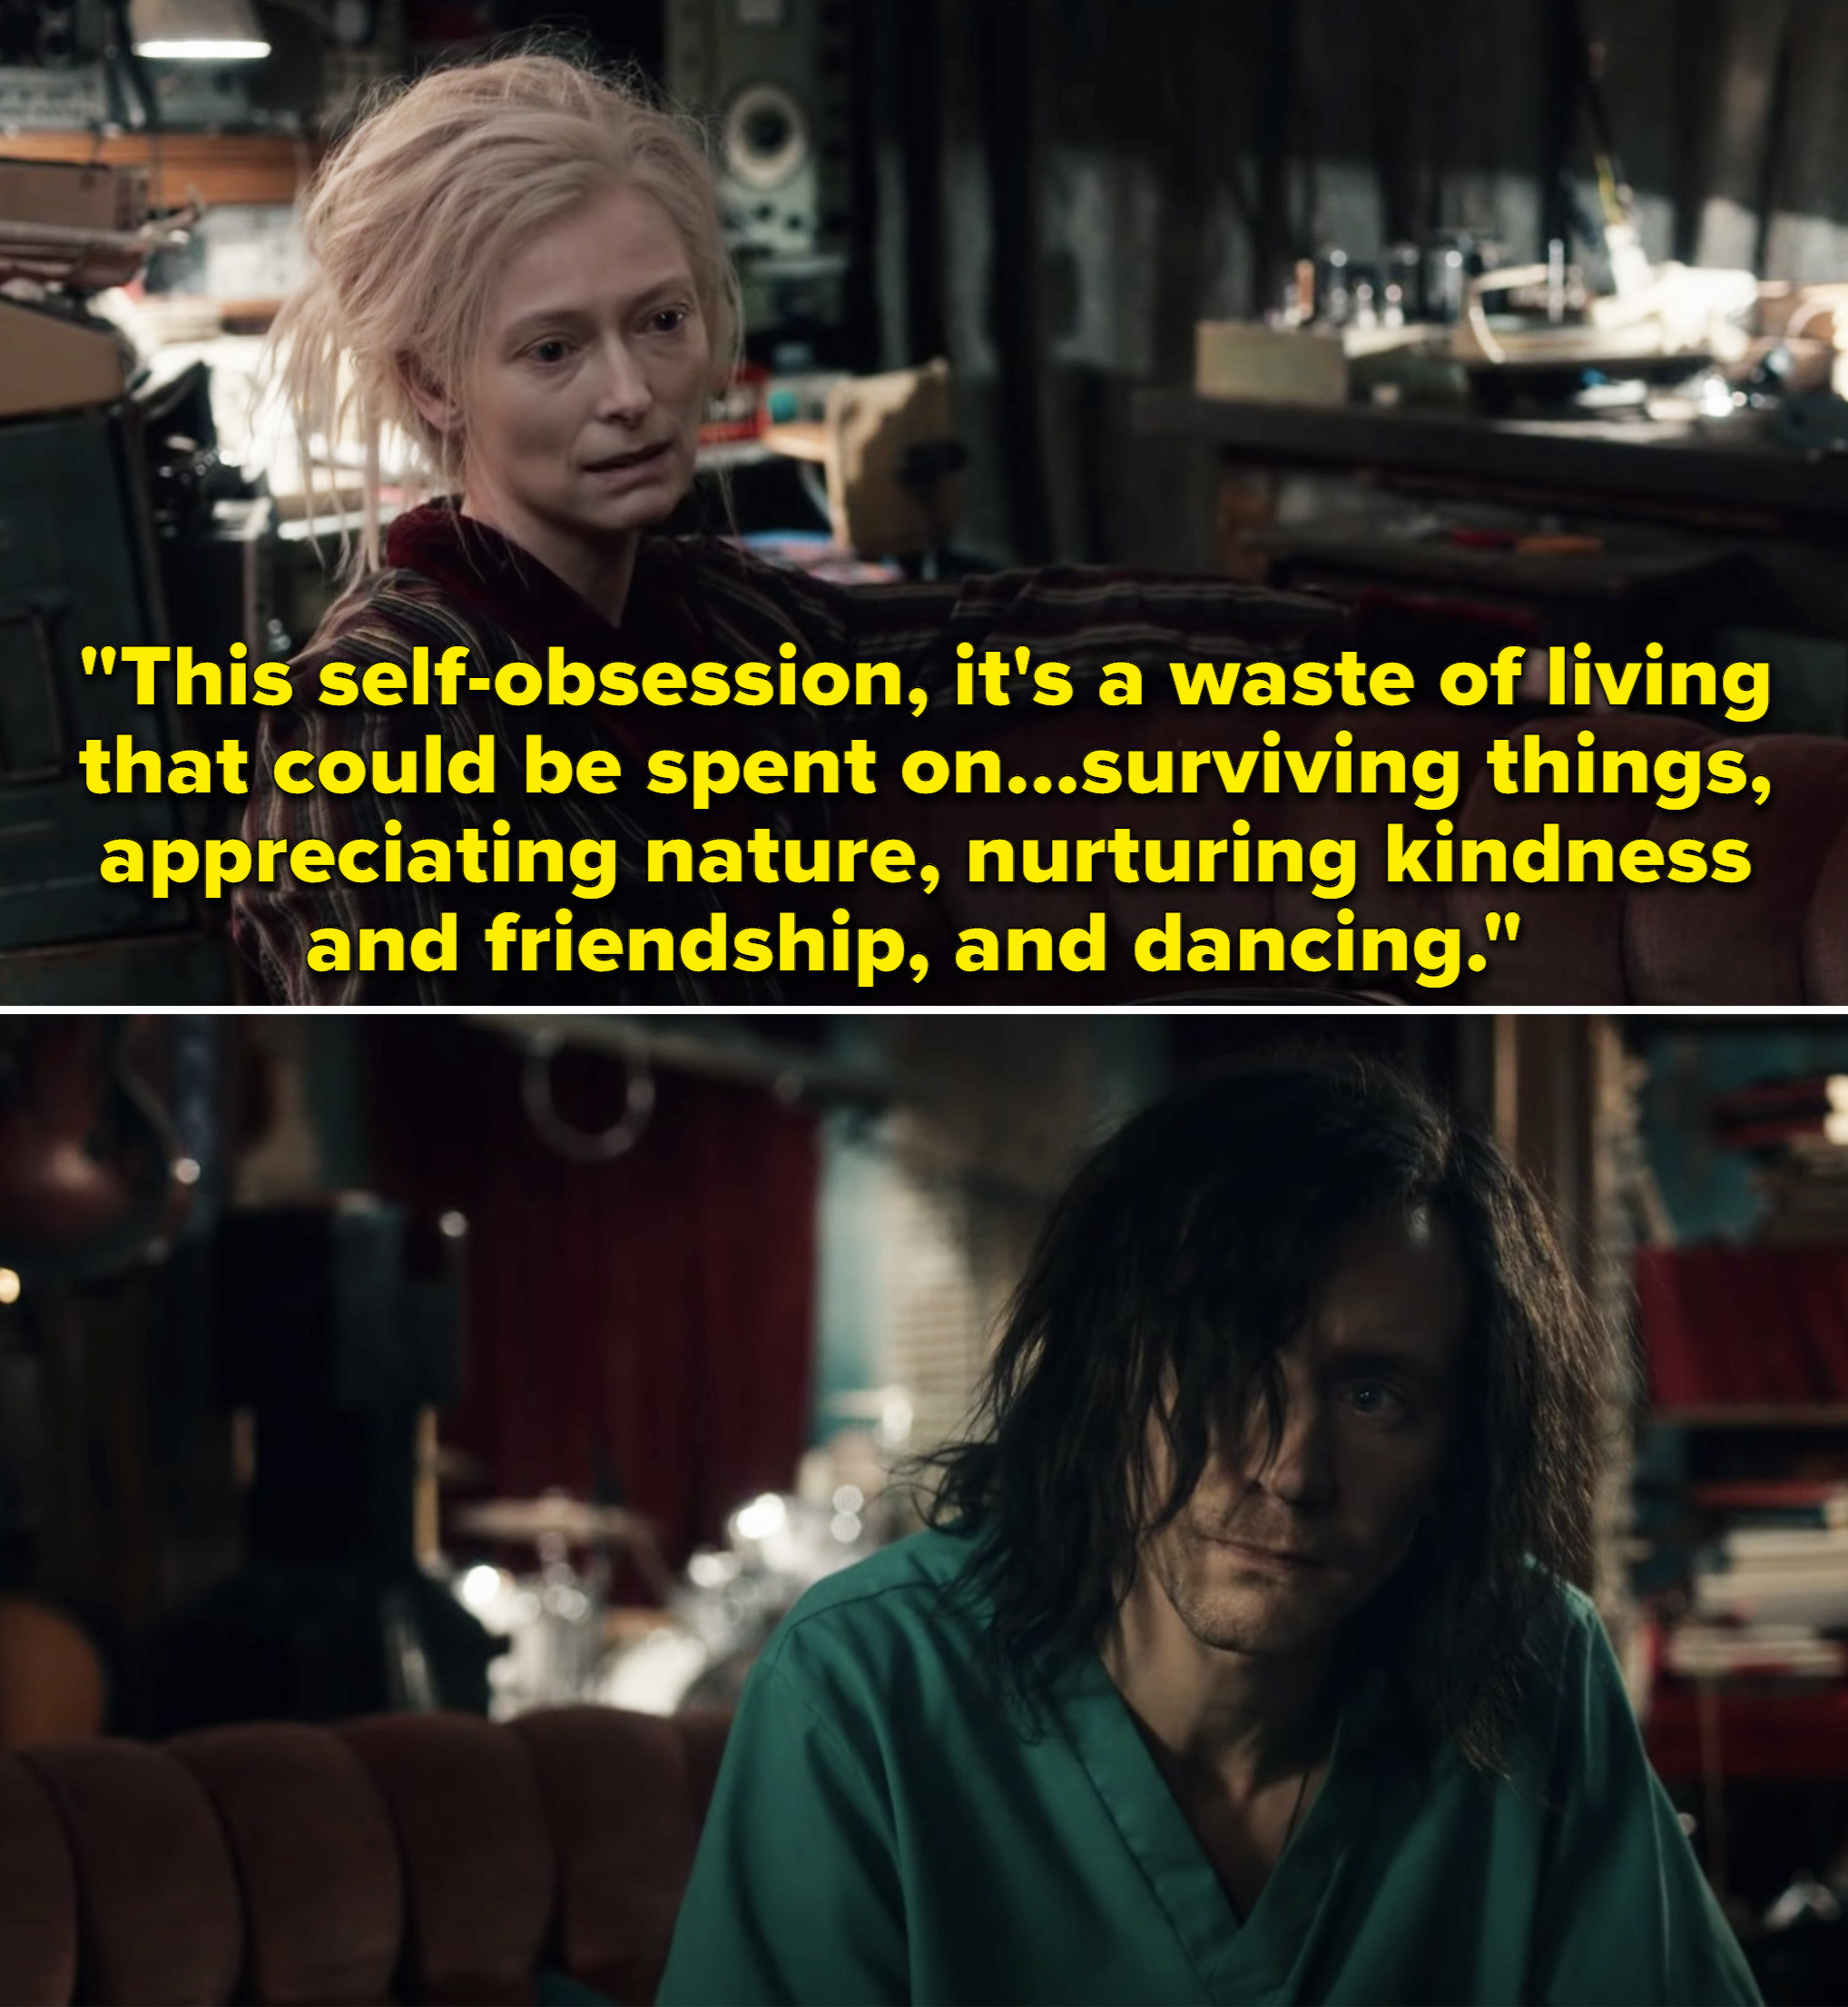 """Eve saying, """"This self-obsession, it's a waste of living that could be spent on surviving things, appreciating nature, nurturing kindness and friendship, and dancing"""""""